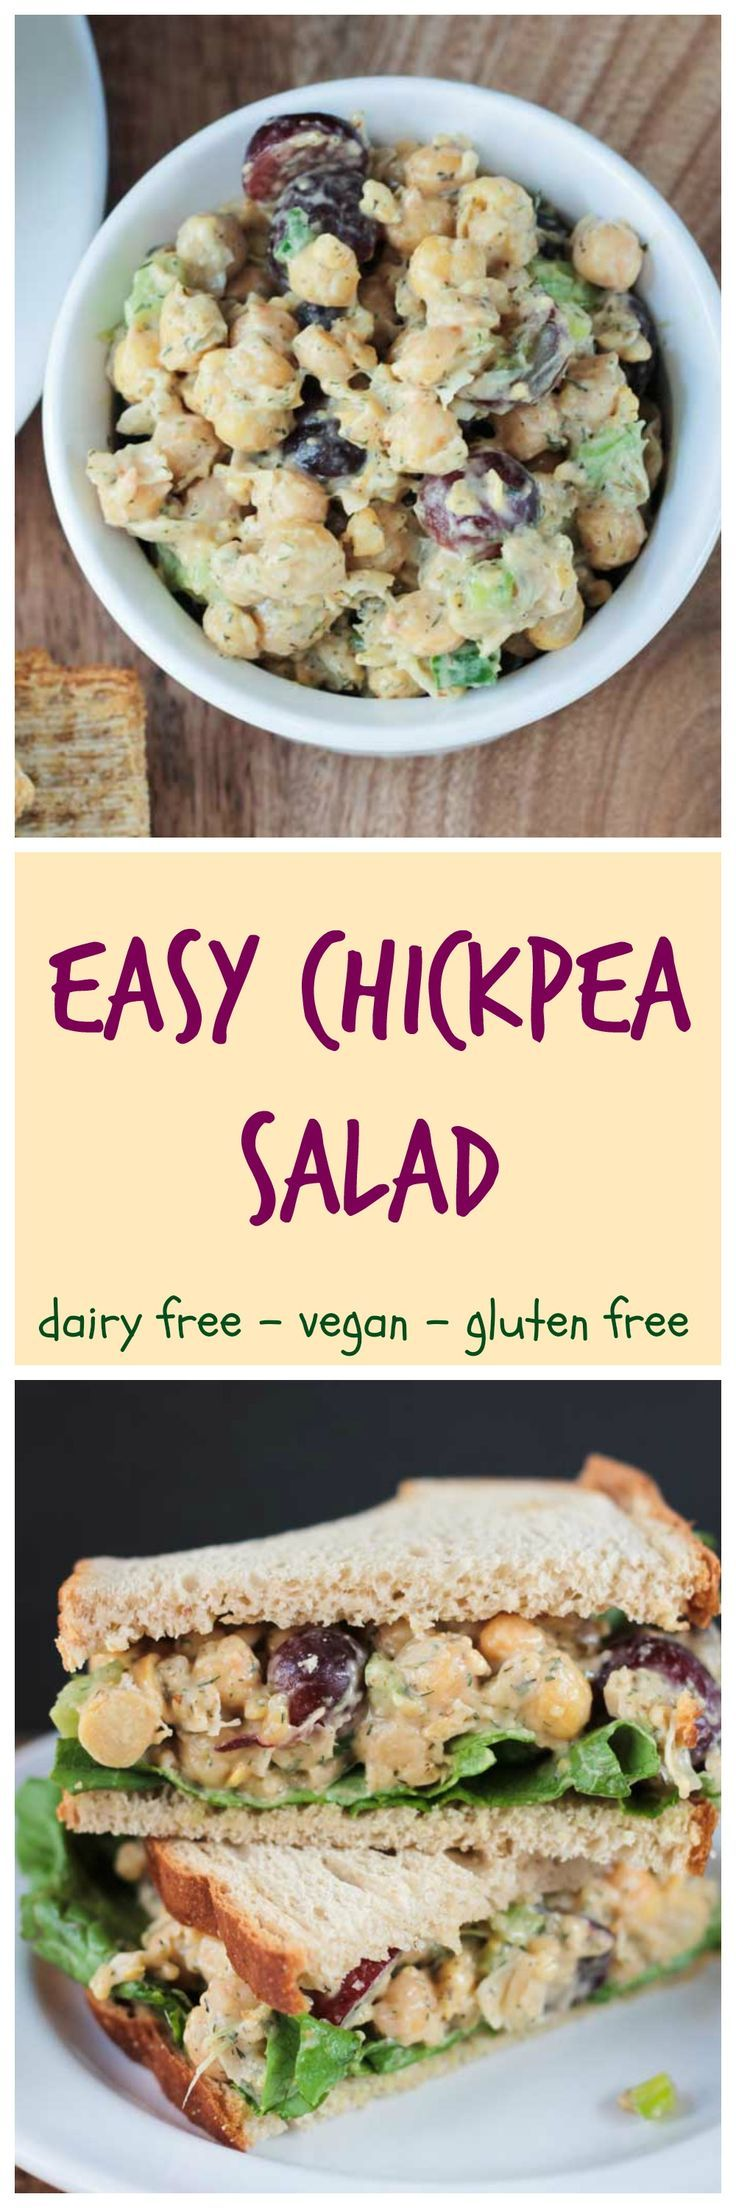 Chickpea Salad - vegan | gluten free | dairy free | sandwich filling | quick and easy | healthy | lunch | lunchbox |